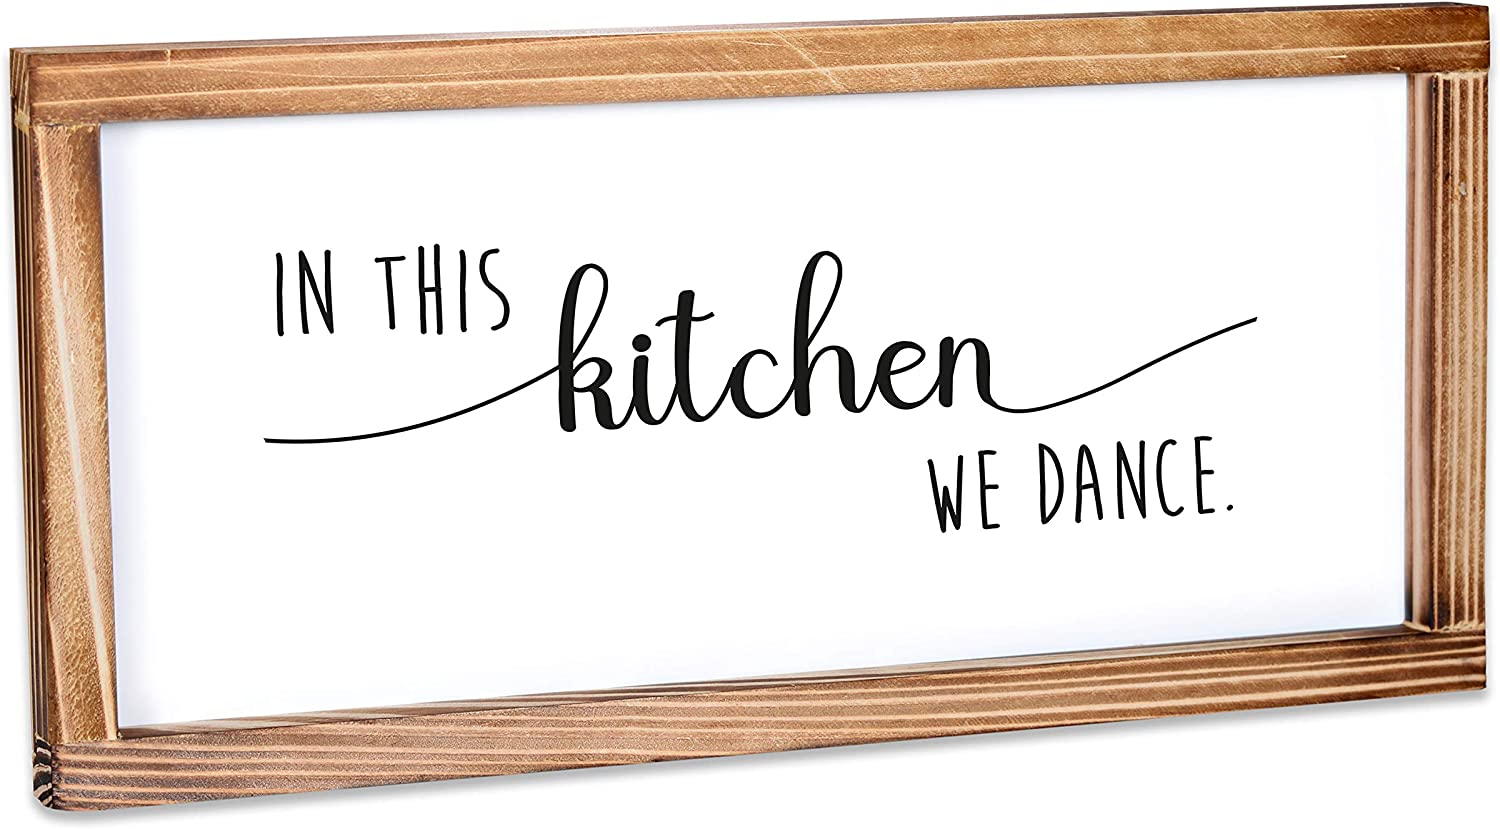 MAINEVENT in This Kitchen We Dance Sign - Funny Kitchen Sign - Farmhouse Kitchen Decor, Kitchen Wall Decor, Rustic Home Decor, Country Kitchen Decor with Solid Wood Frame 8x17 Inch